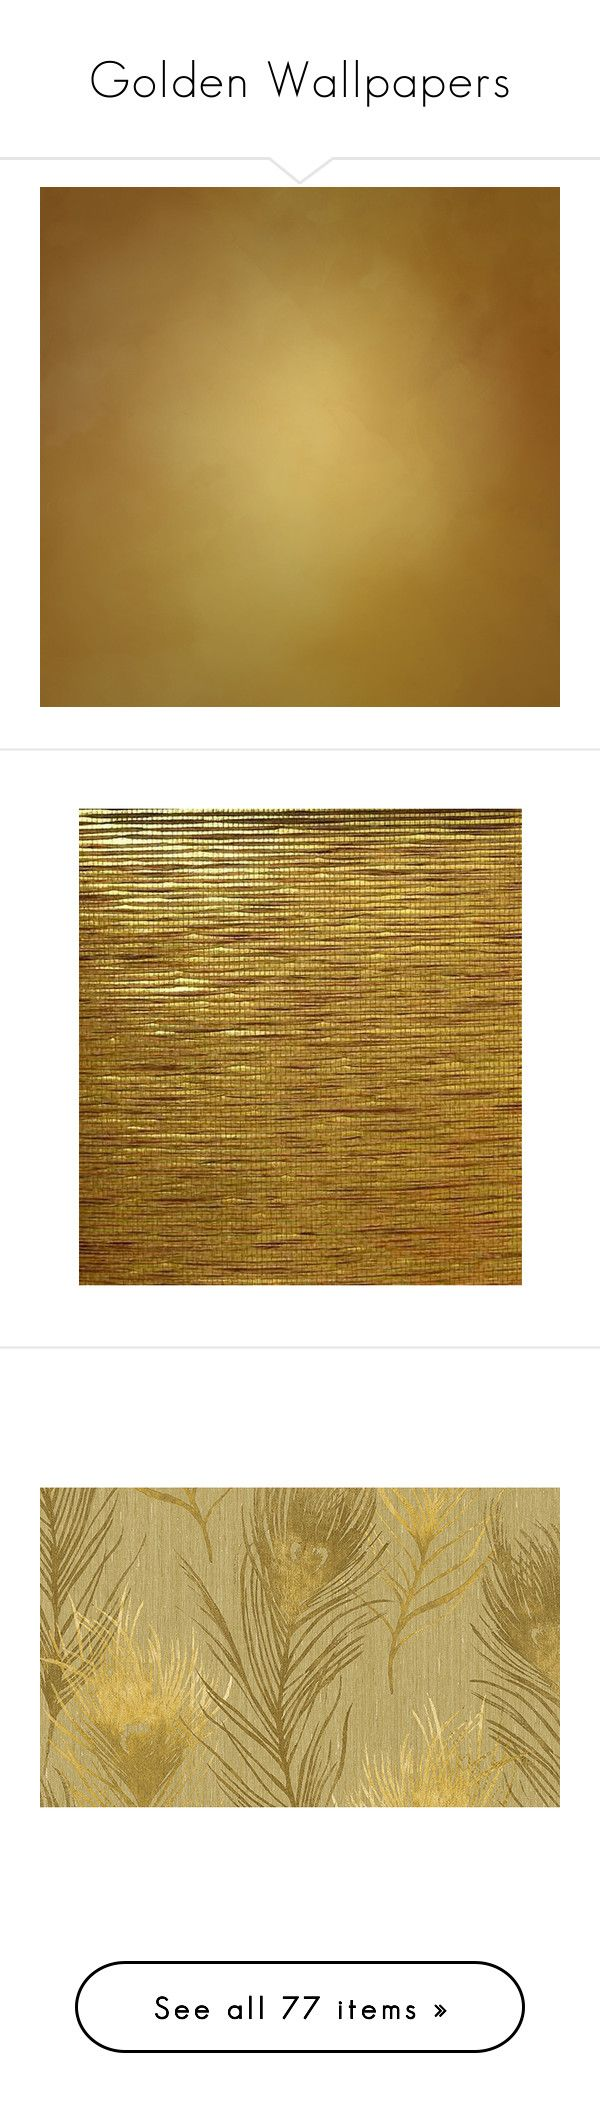 """""""Golden Wallpapers"""" by lailoooo ❤ liked on Polyvore featuring home, home decor, wallpaper, wallpaper samples, stripe wallpaper, brown textured wallpaper, asian wallpaper, brown striped wallpaper, gold stripe wallpaper and metallic wallpaper"""